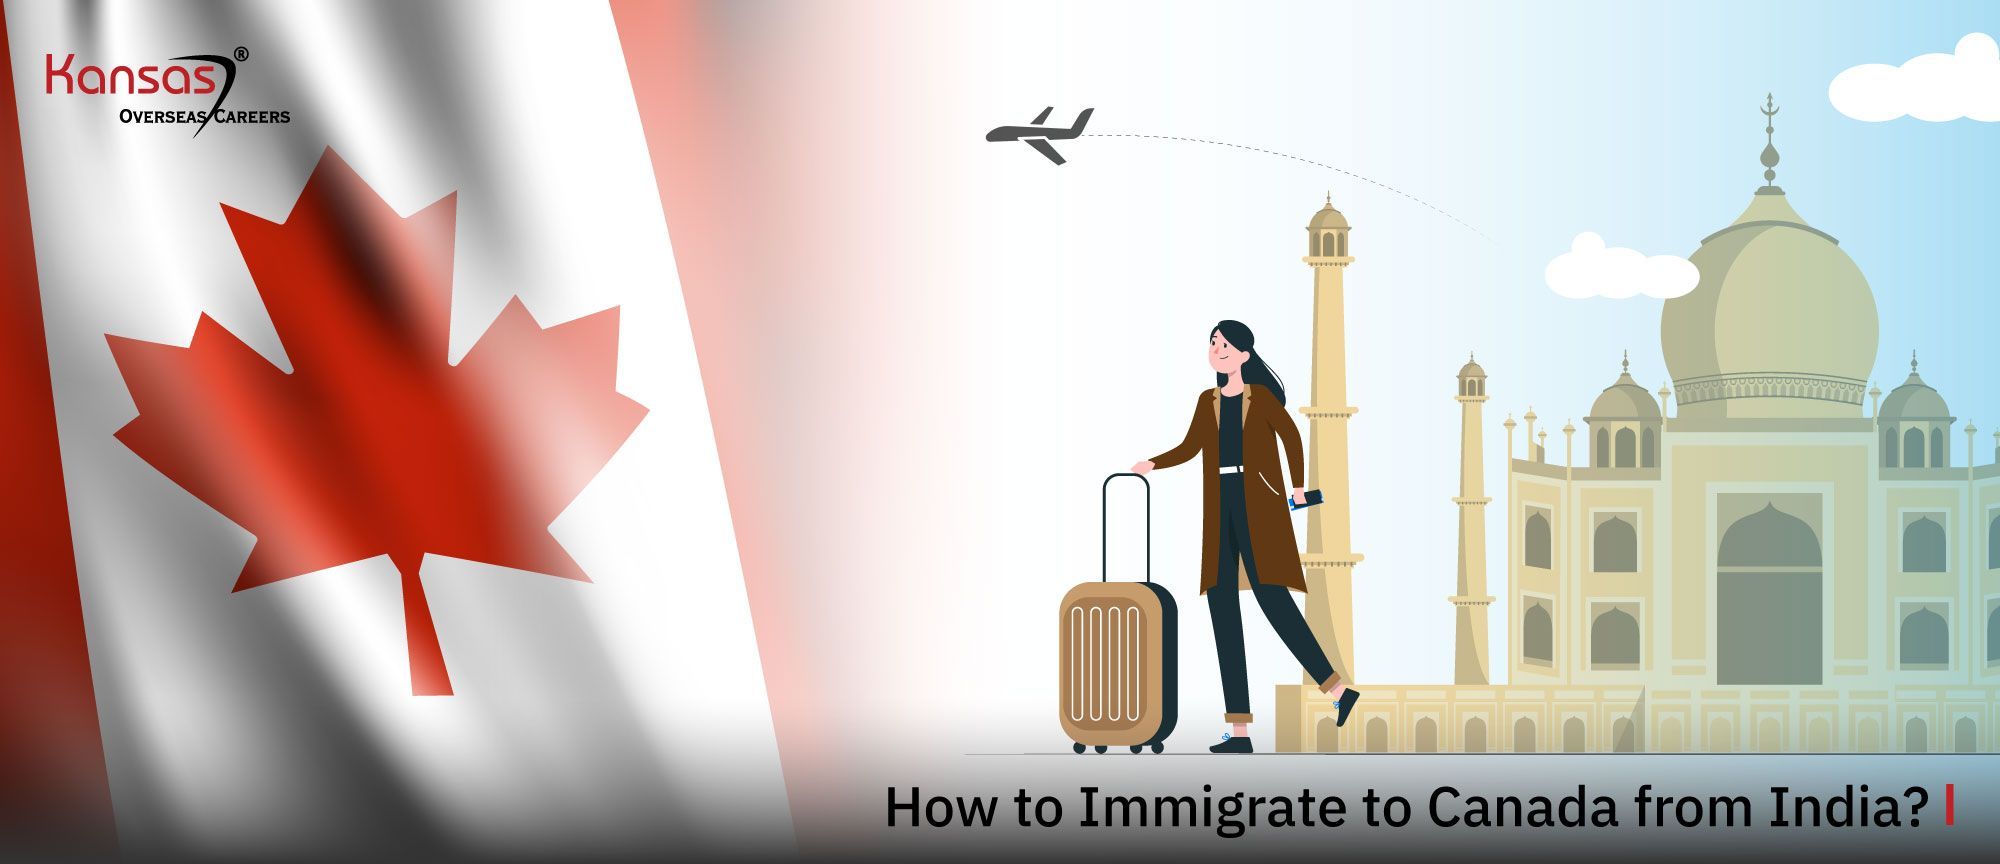 How-to-Immigrate-to-Canada-from-India-